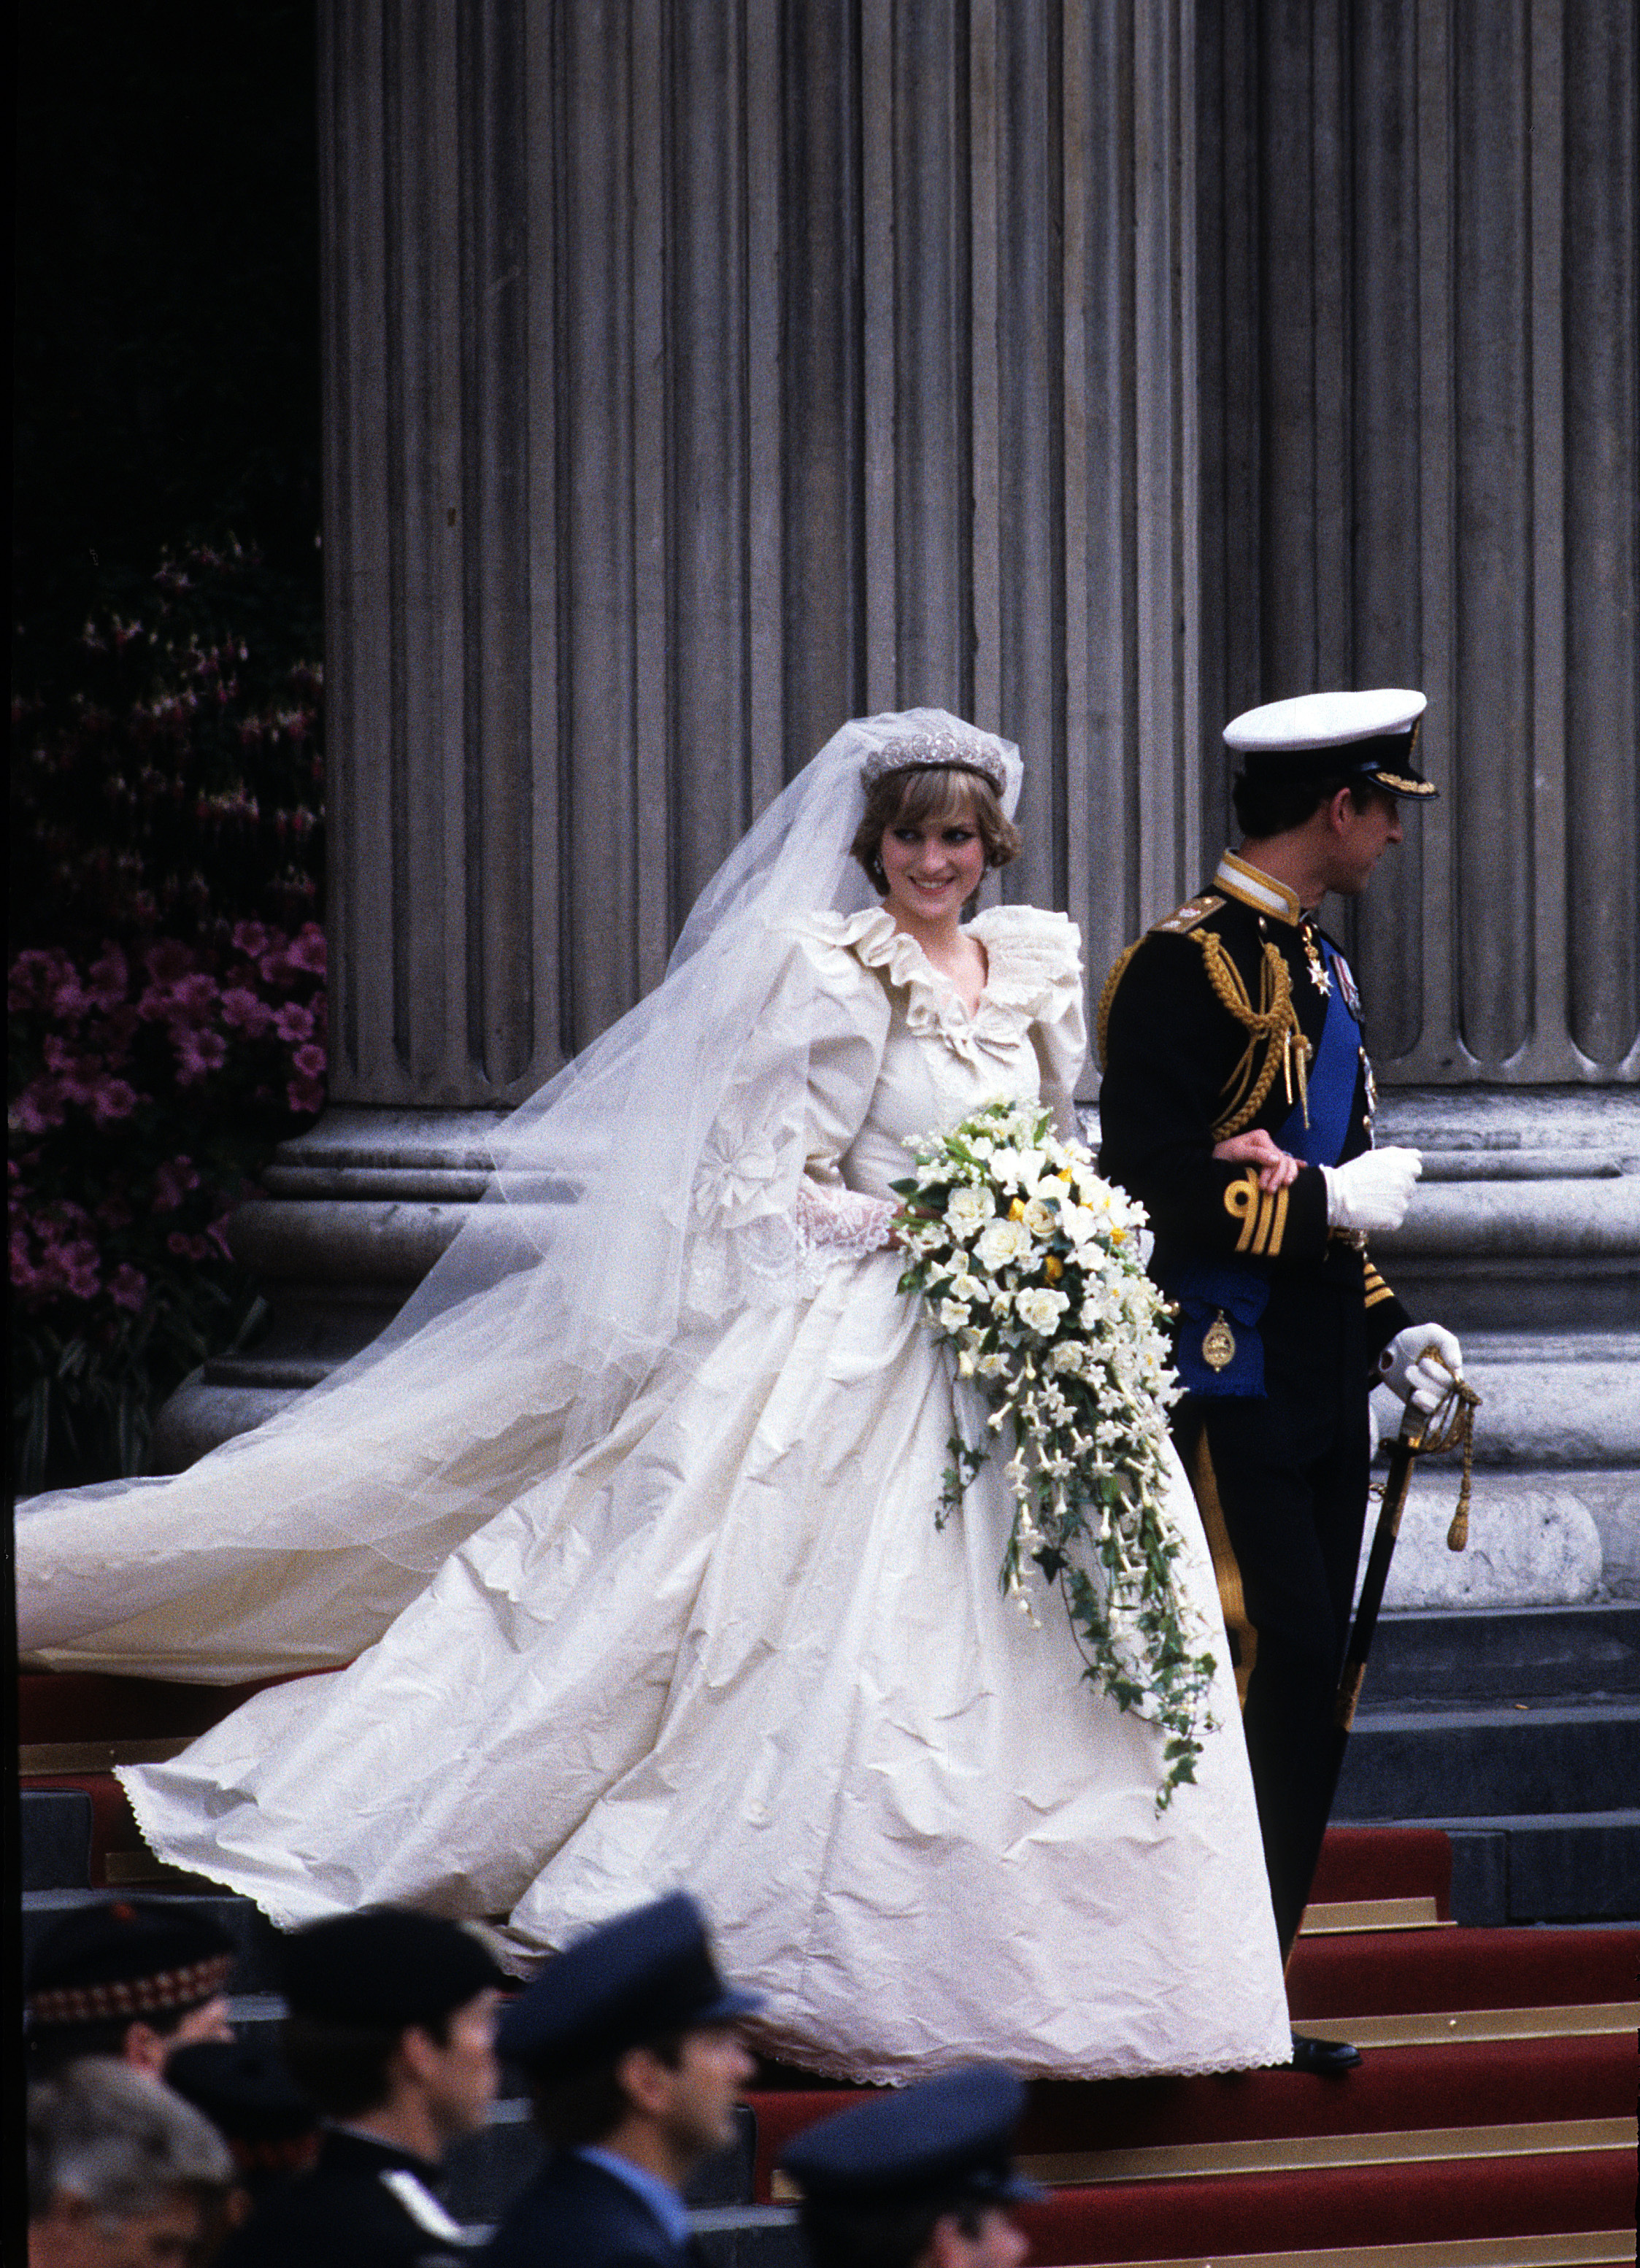 File Photo*** The designers behind Princess Diana's wedding dress are putting a host of iconic outfits belonging to the late royal under the hammer. David and Elizabeth Emanuel designed the fairytale princess gown Diana wore to marry Prince Charles in 1981, and helped the shy nursery school teacher become the most glamorous and beloved member of British royal family. Included in the sale is the black taffeta Emanuel dress worn by Diana on her first appearance as the Prince of Wales' fiance, as well as original sketches of her wedding dress and the chiffon blouse Diana wore for her engagement portrait by Lord Snowdon. The lots will be open to bidders in London on 8 June (10). London, England - 13.04.10  Diana, Princess of Wales, wearing an Emanuel wedding dress,  and Prince Charles, Prince of Wales leave St. Paul's Cathedral following their wedding on 29 July 1981.  Featuring: ***File Photo*** Where: London, United Kingdom When: 12 Apr 2010 Credit: WENN  **Not available for publication in France**